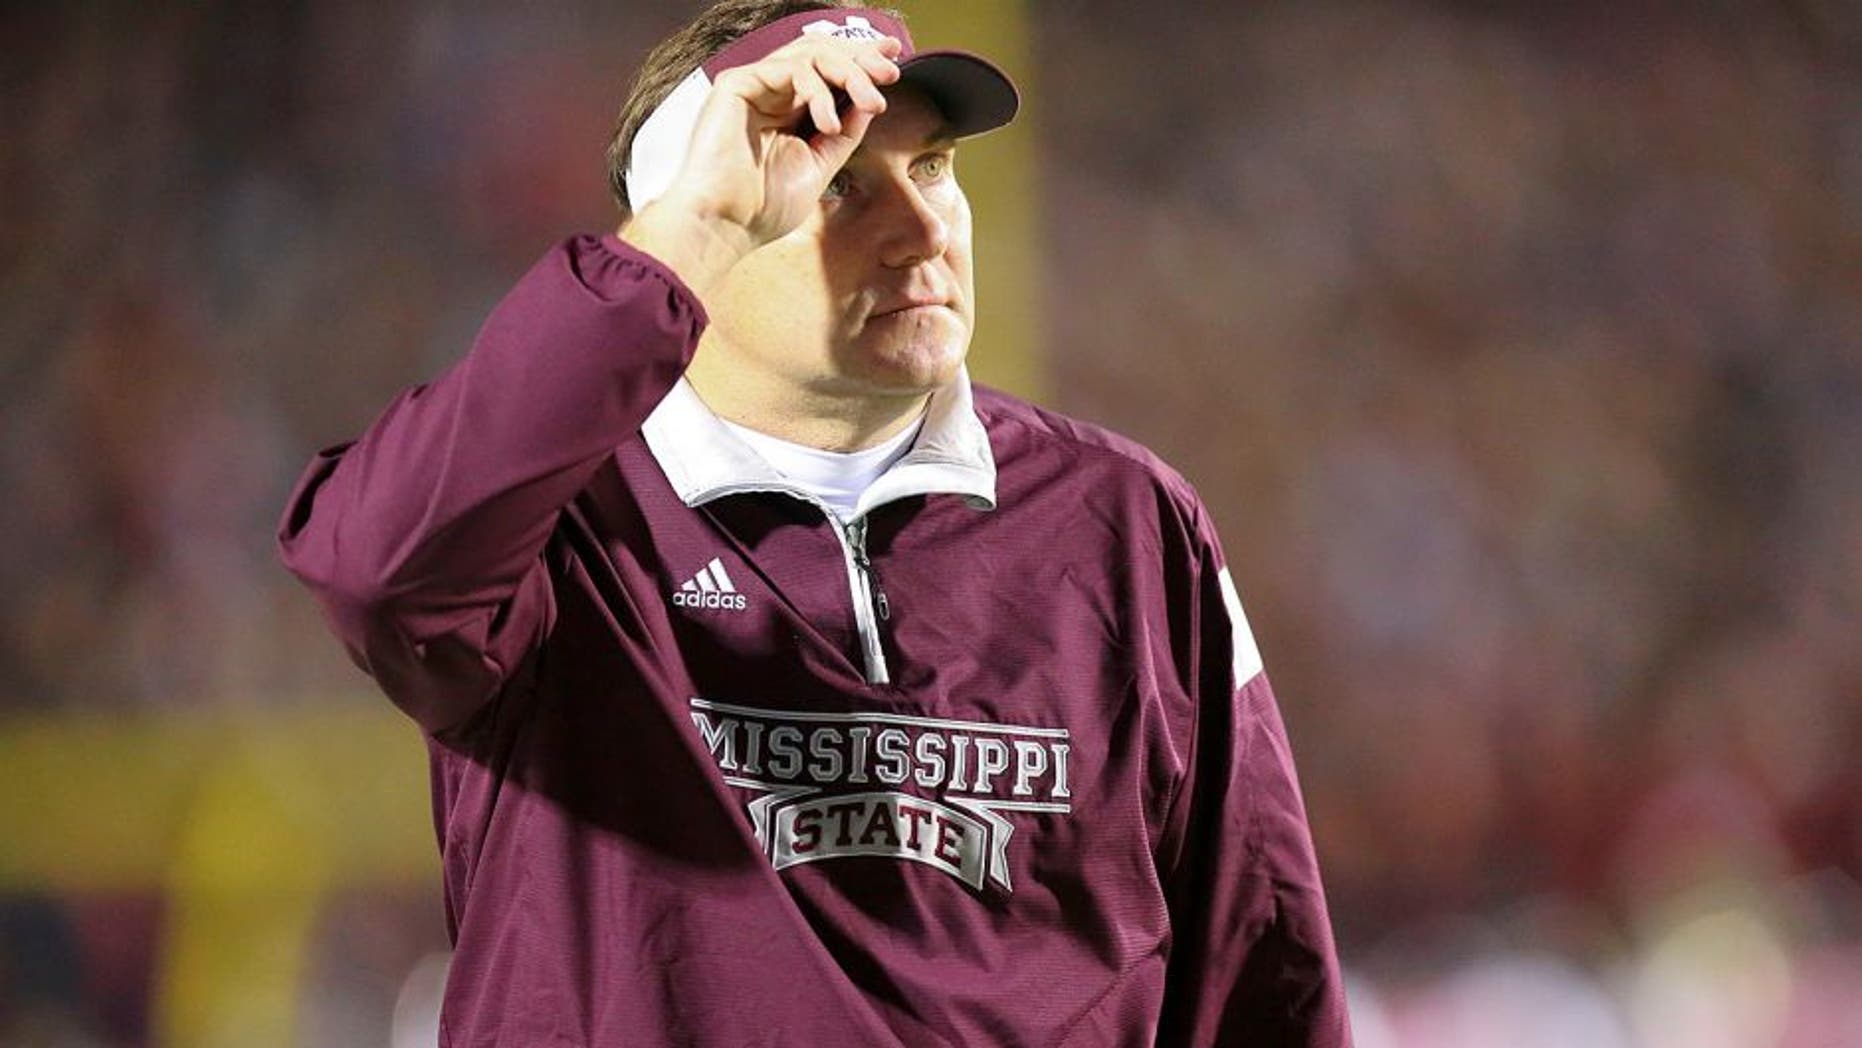 Nov 29, 2014; Oxford, MS, USA; Mississippi State Bulldogs head coach Dan Mullen looks on against the Mississippi Rebels at Vaught-Hemingway Stadium. The Rebels won 31-17. Mandatory Credit: Spruce Derden-USA TODAY Sports